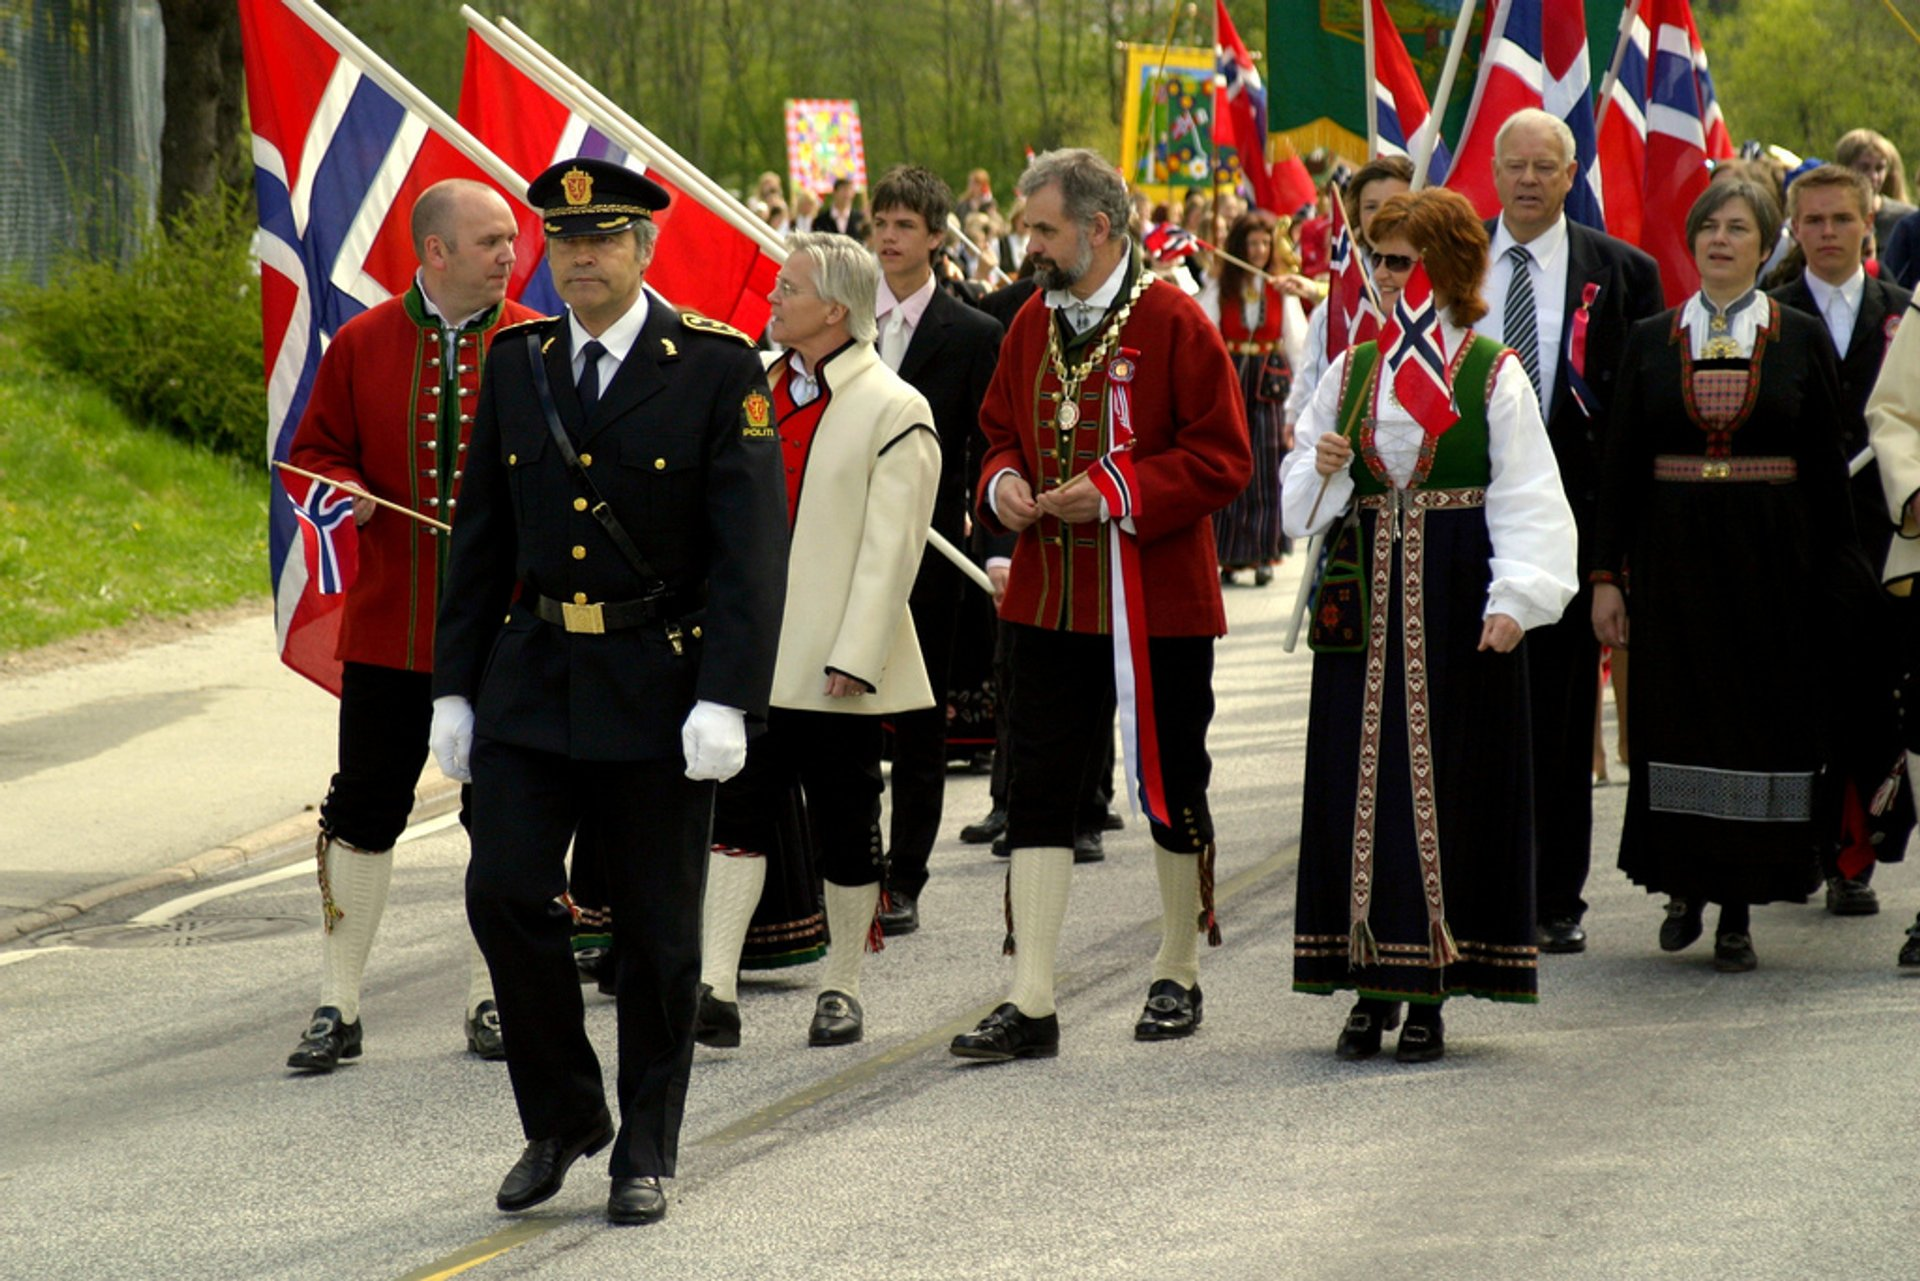 Best time to see Norway's National Day in Norway 2019